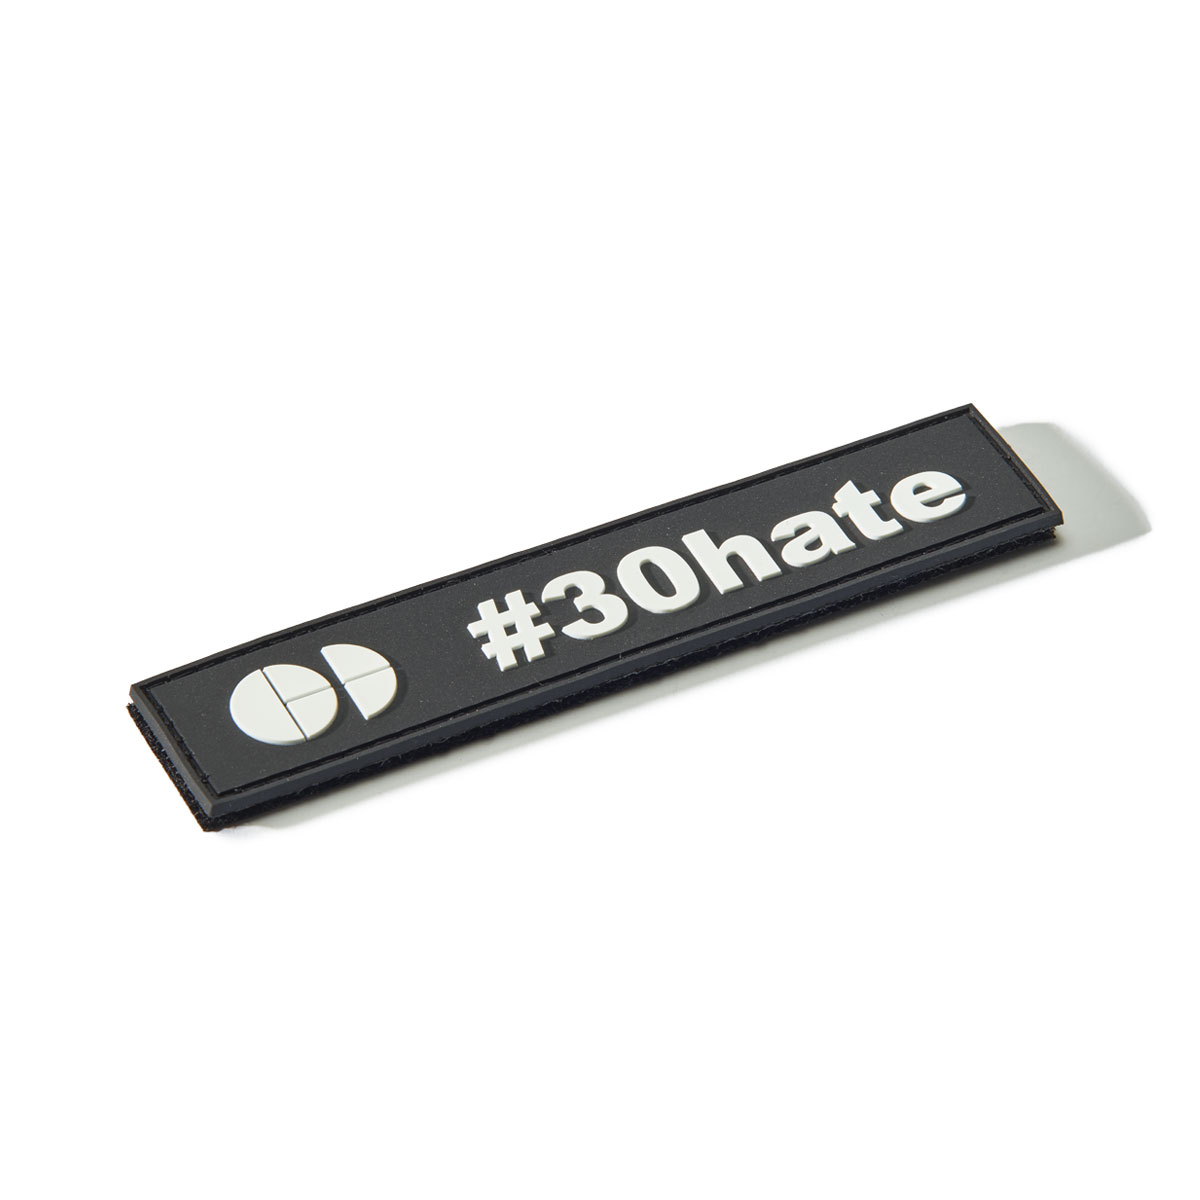 Cloud Defensive Ammo Patch #30hate Angle